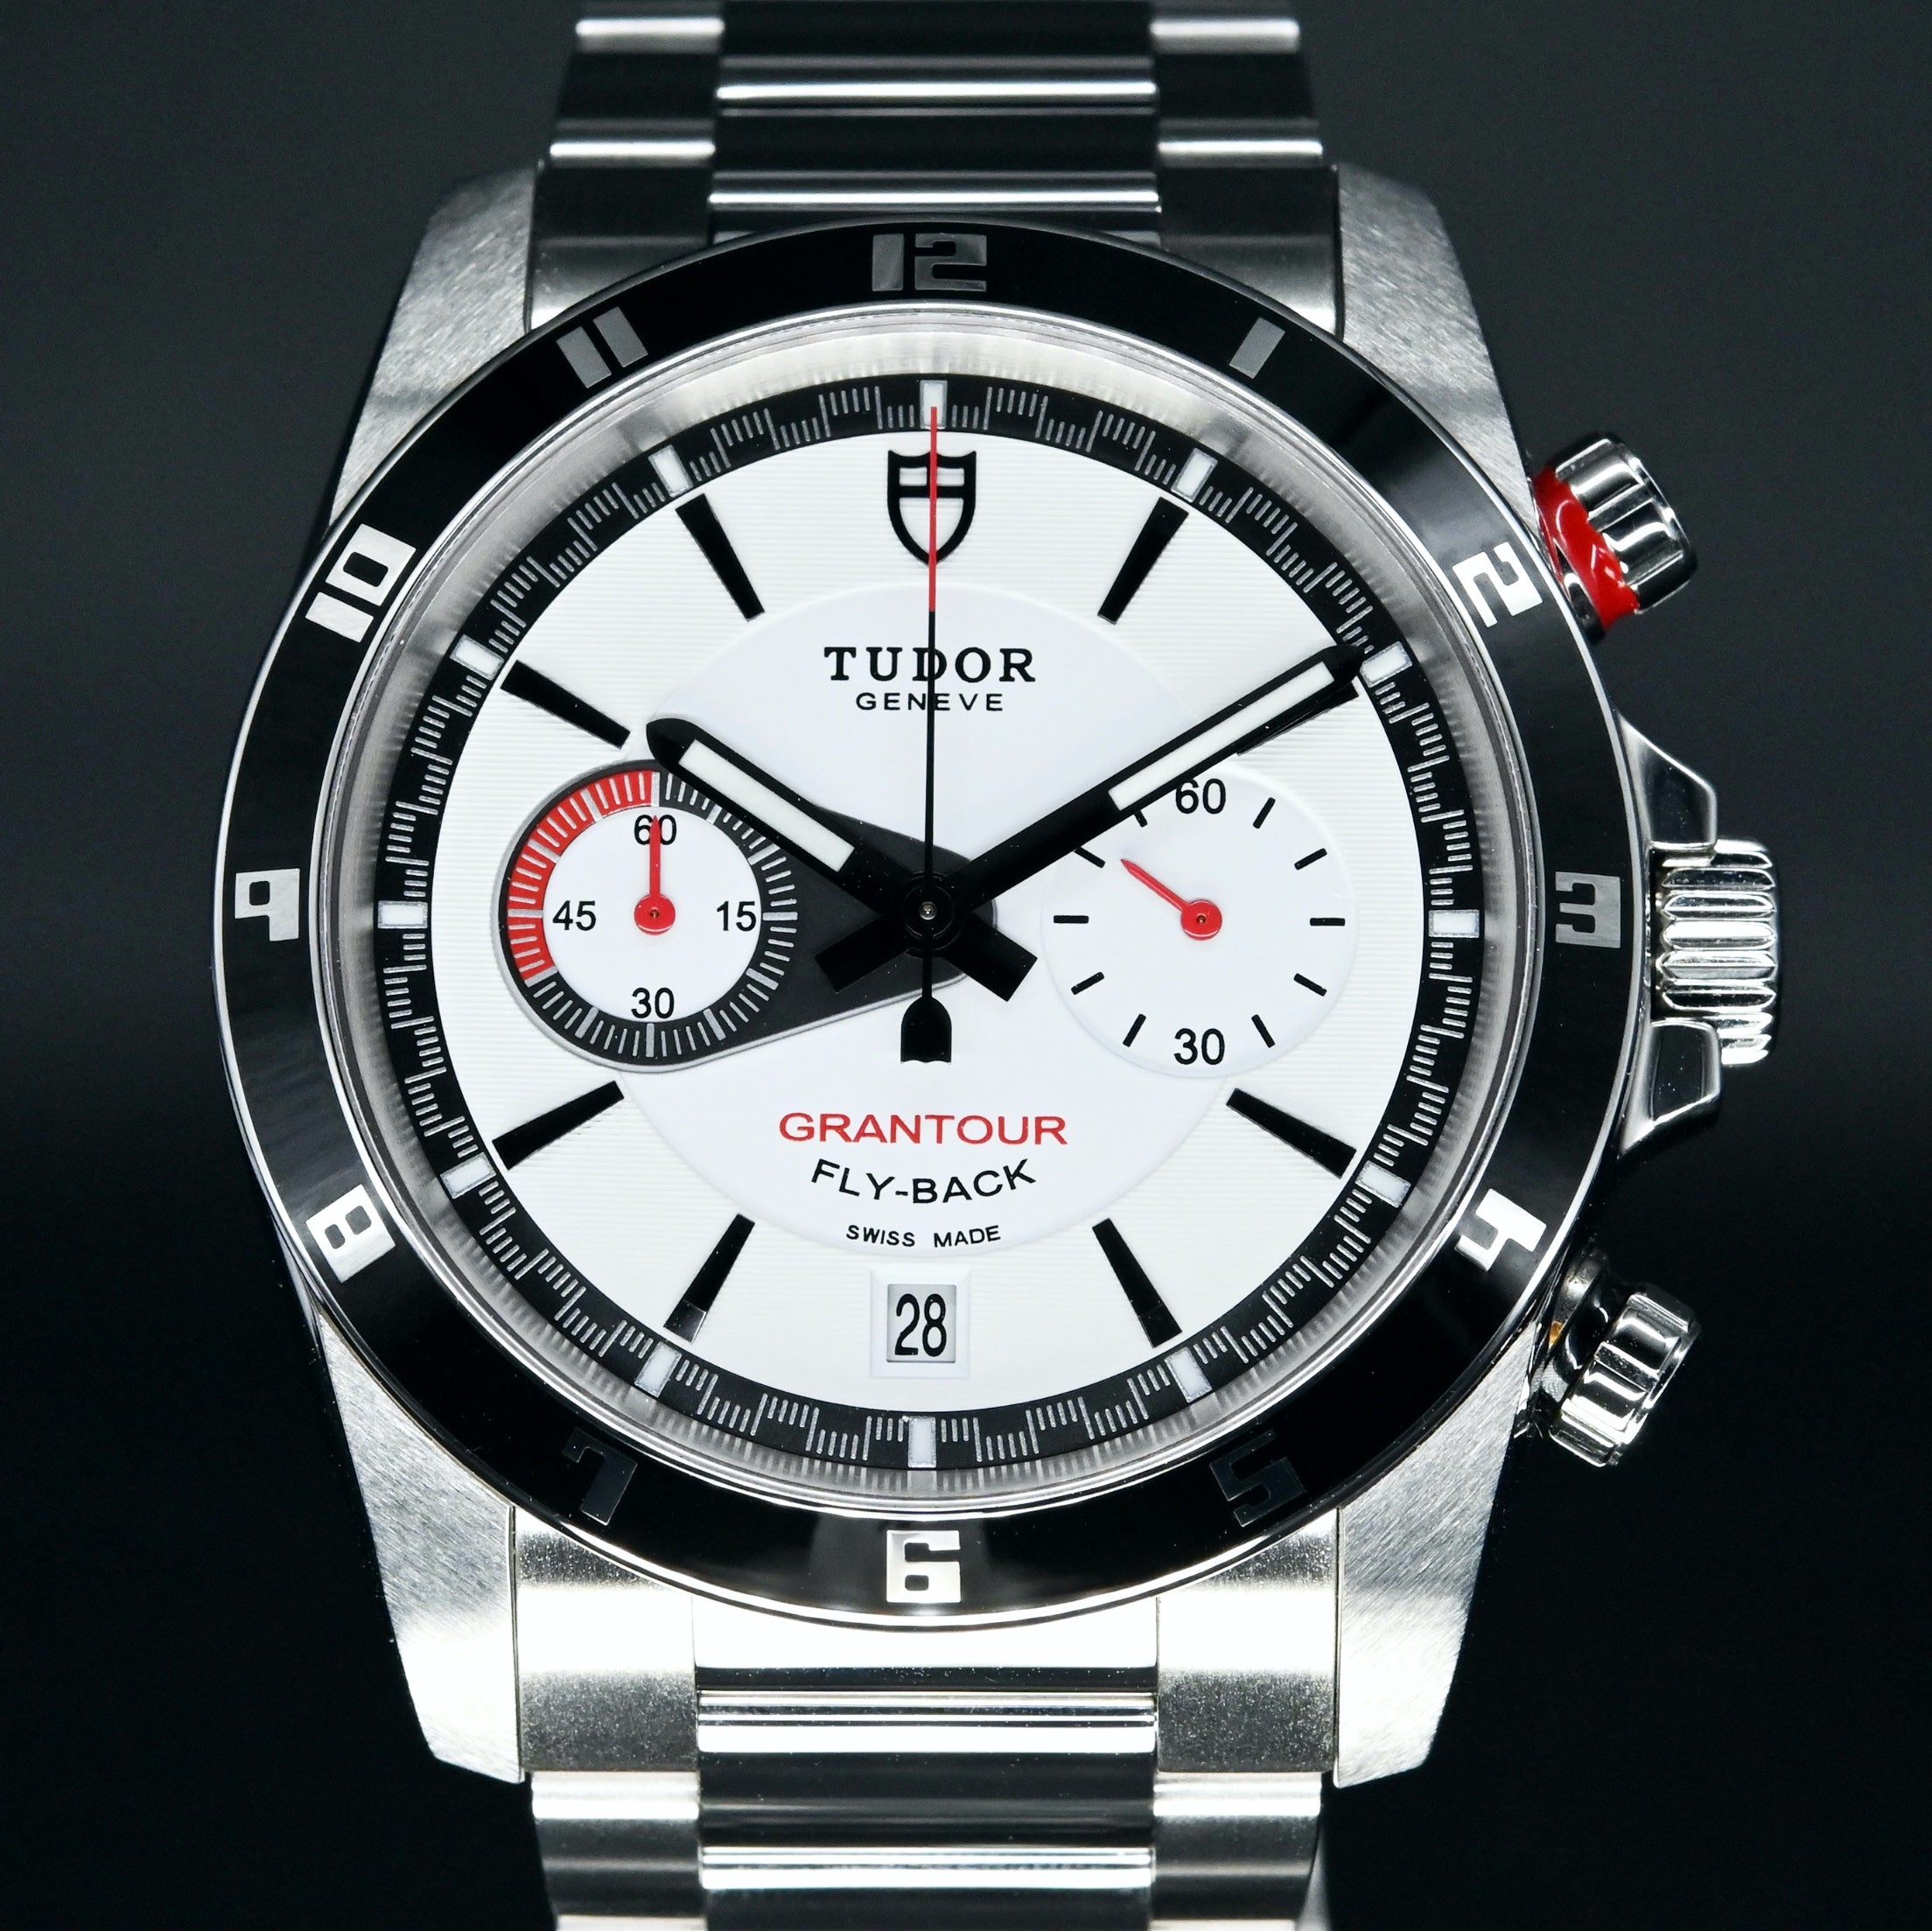 [Brand New Watch] Tudor Grantour Flyback Chronograph 42mm 20550N White Dial (Steel Bracelet) (Out of Production) (888)